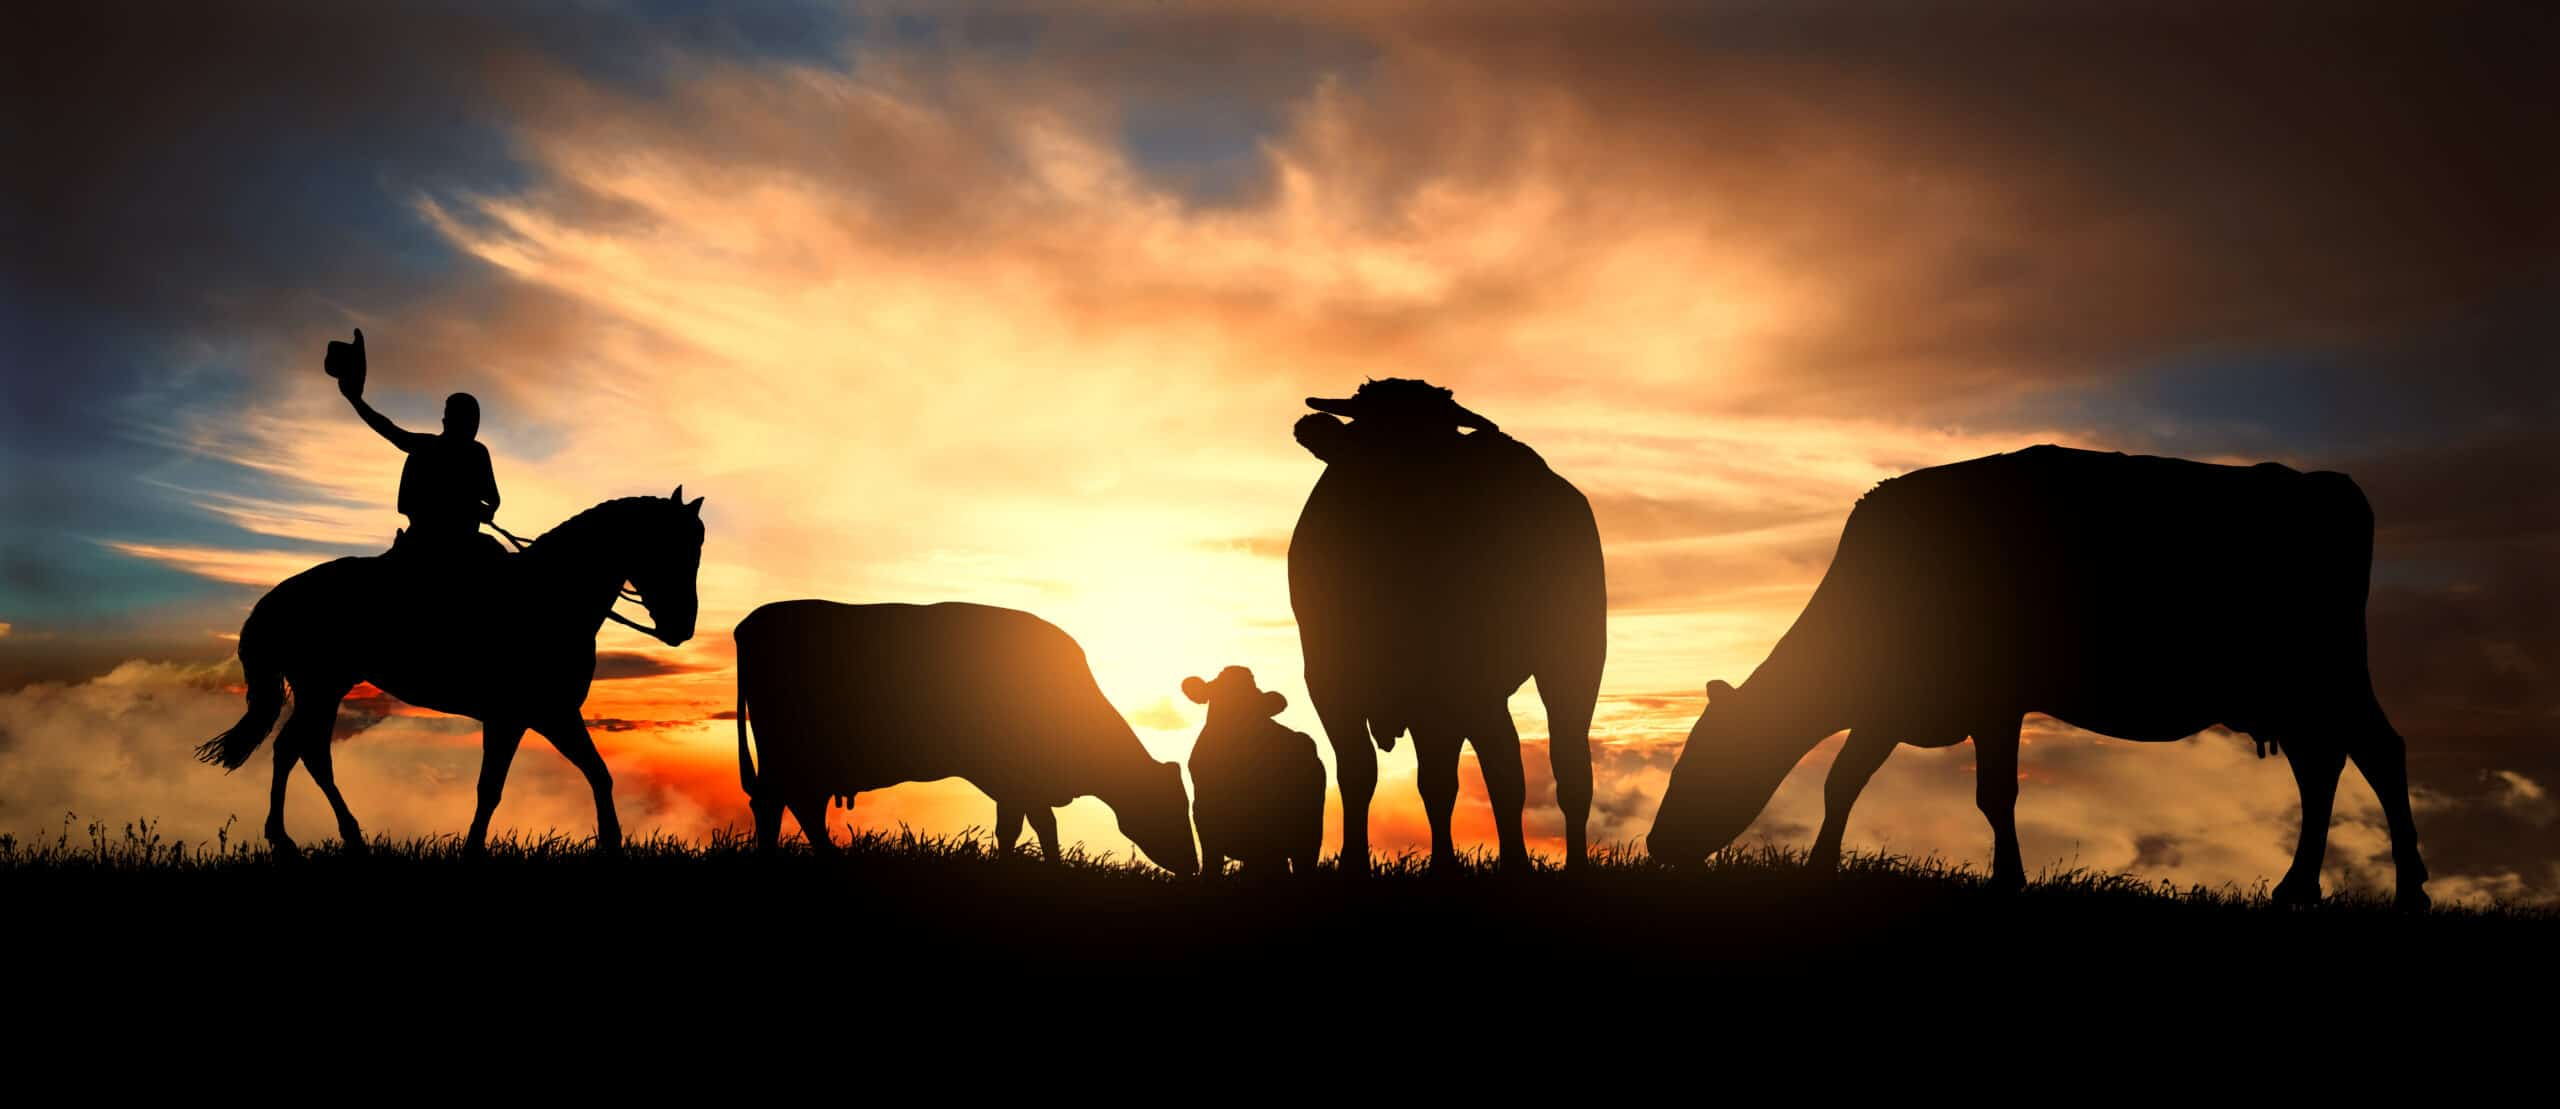 Cowboy with a herd of cattle at dusk.